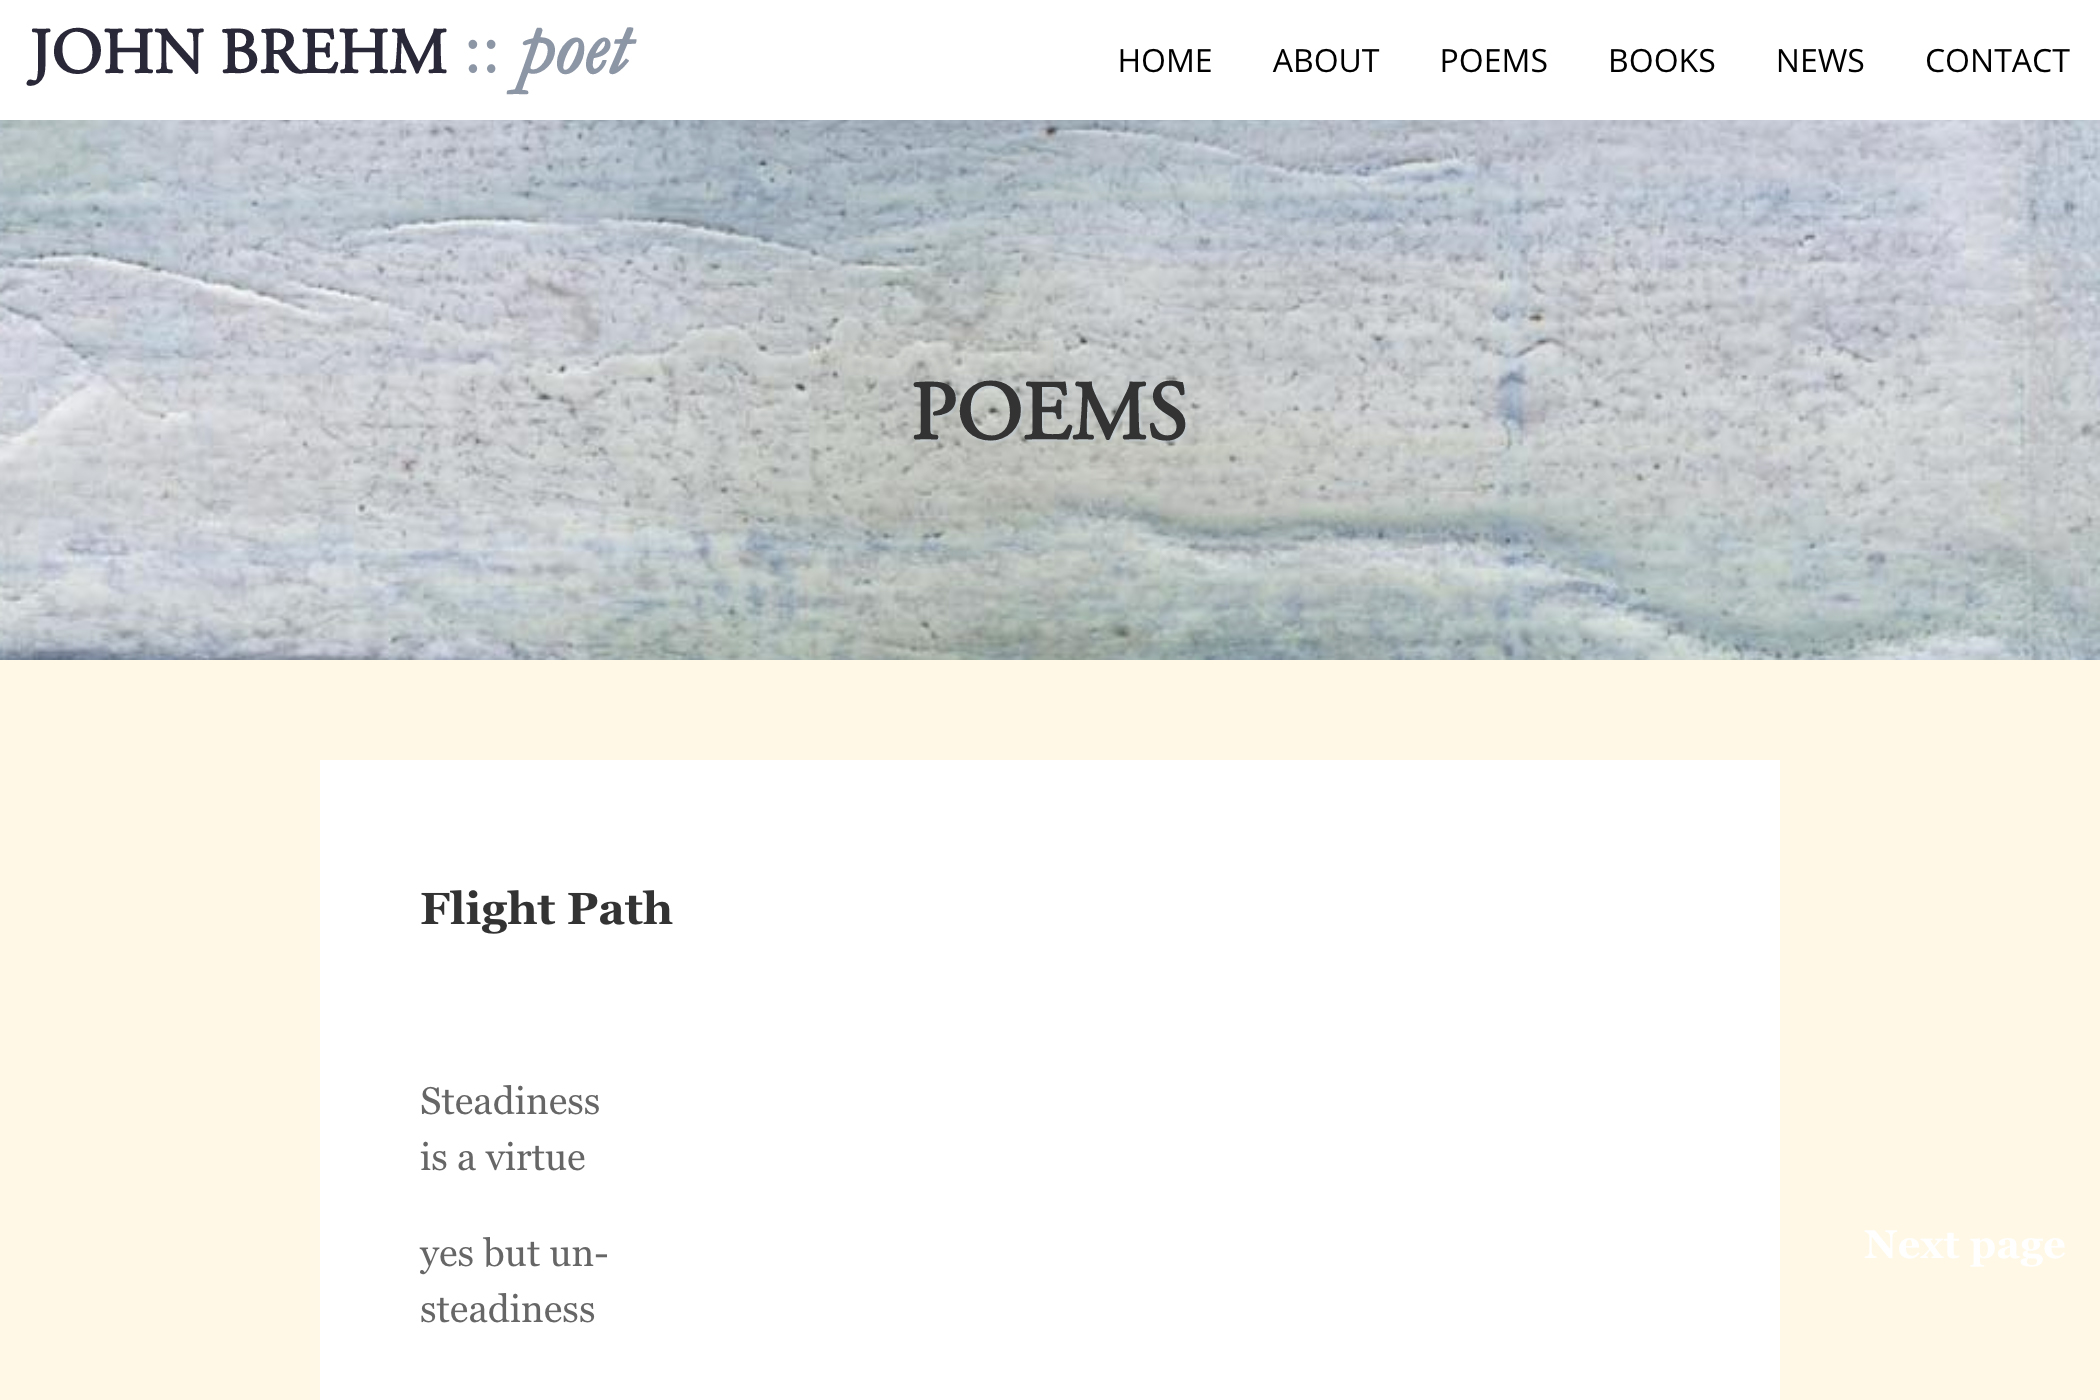 website design for a writer - poems page